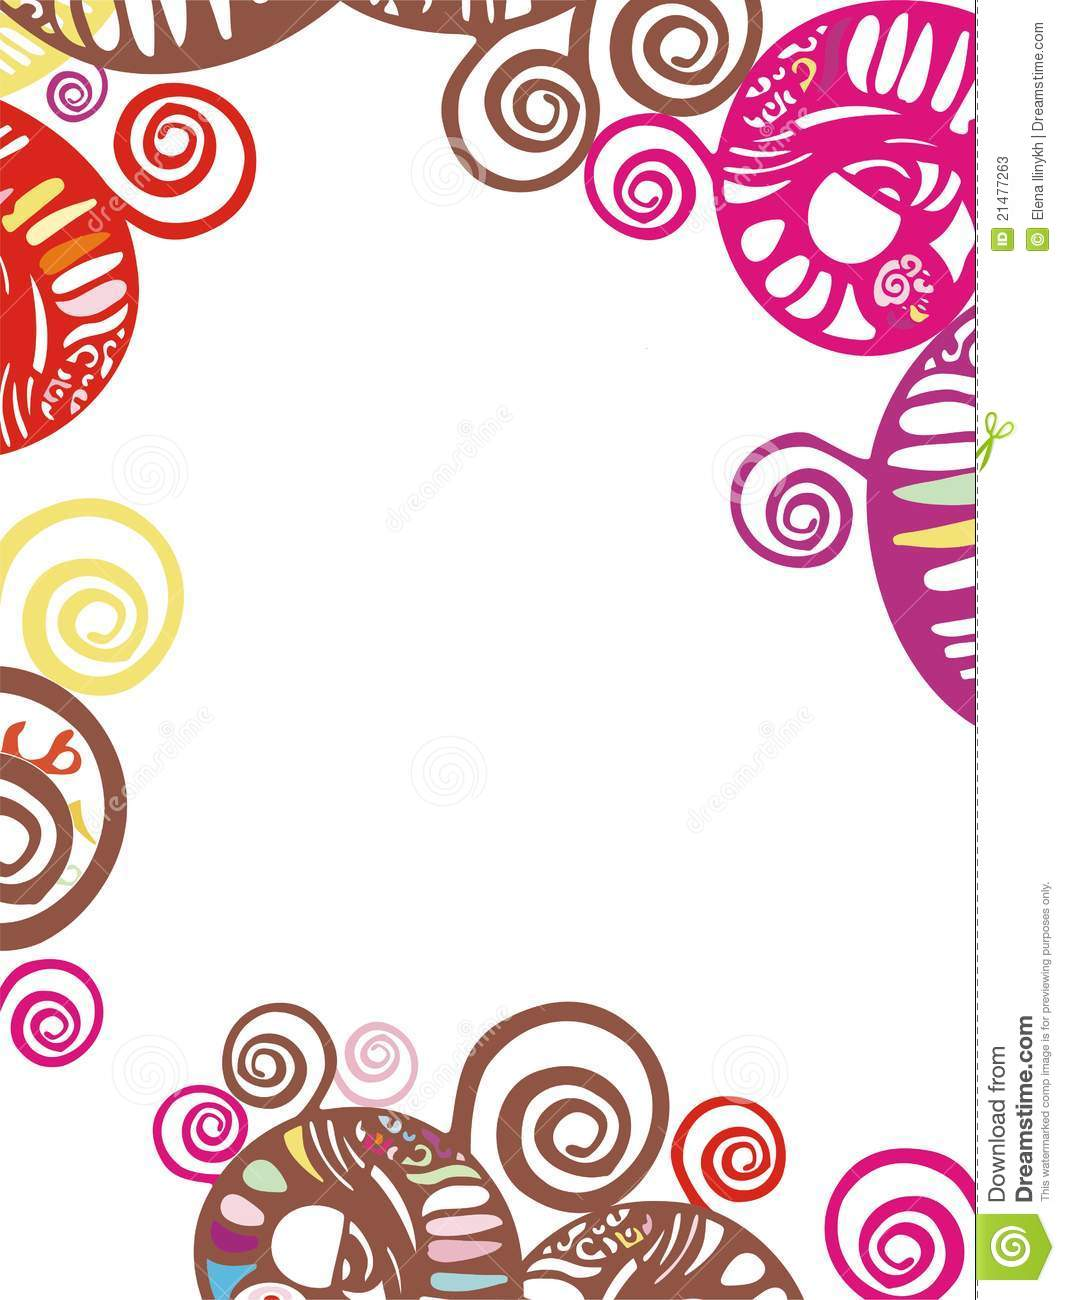 Abstract Patterned Decorative Border With Spiral S Stock ...